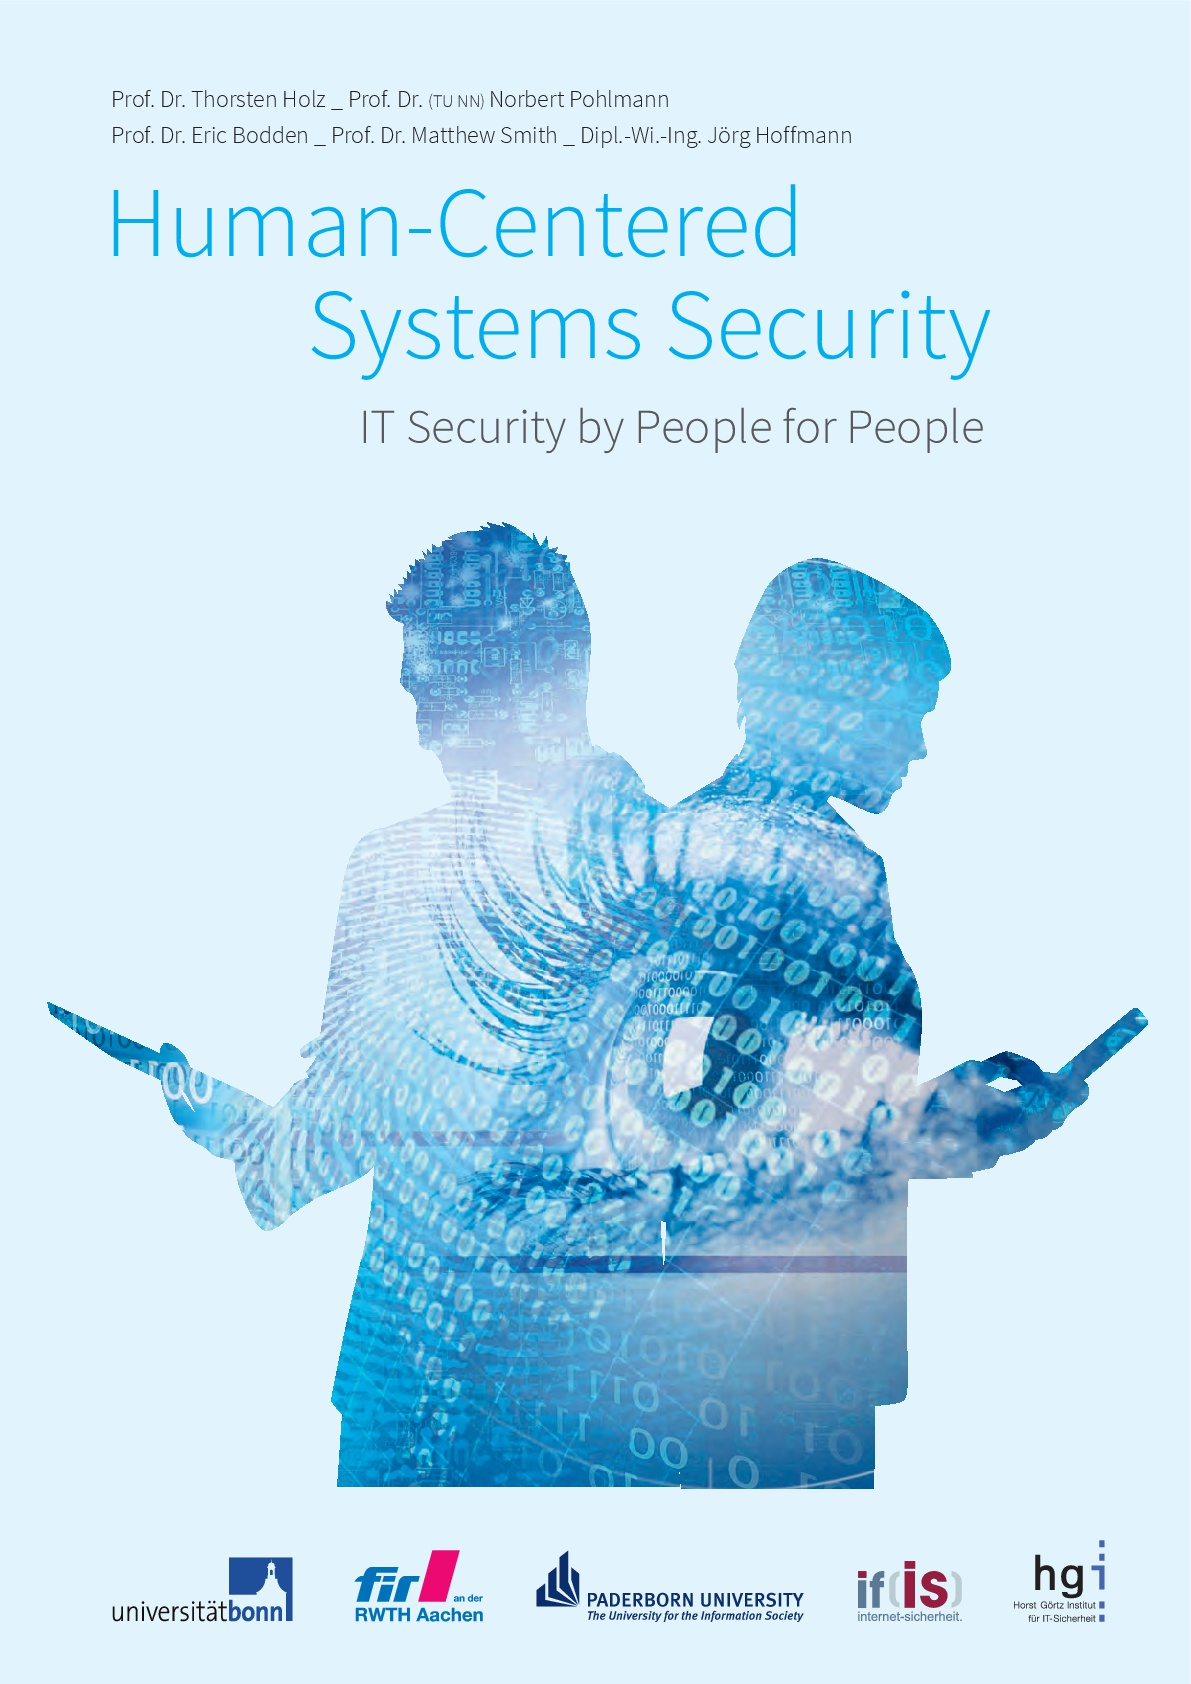 Research agenda NRW - Human-Centered Systems Security - IT Security by People for People - English - Prof. Norbert Pohlmann 2016-1-1-001